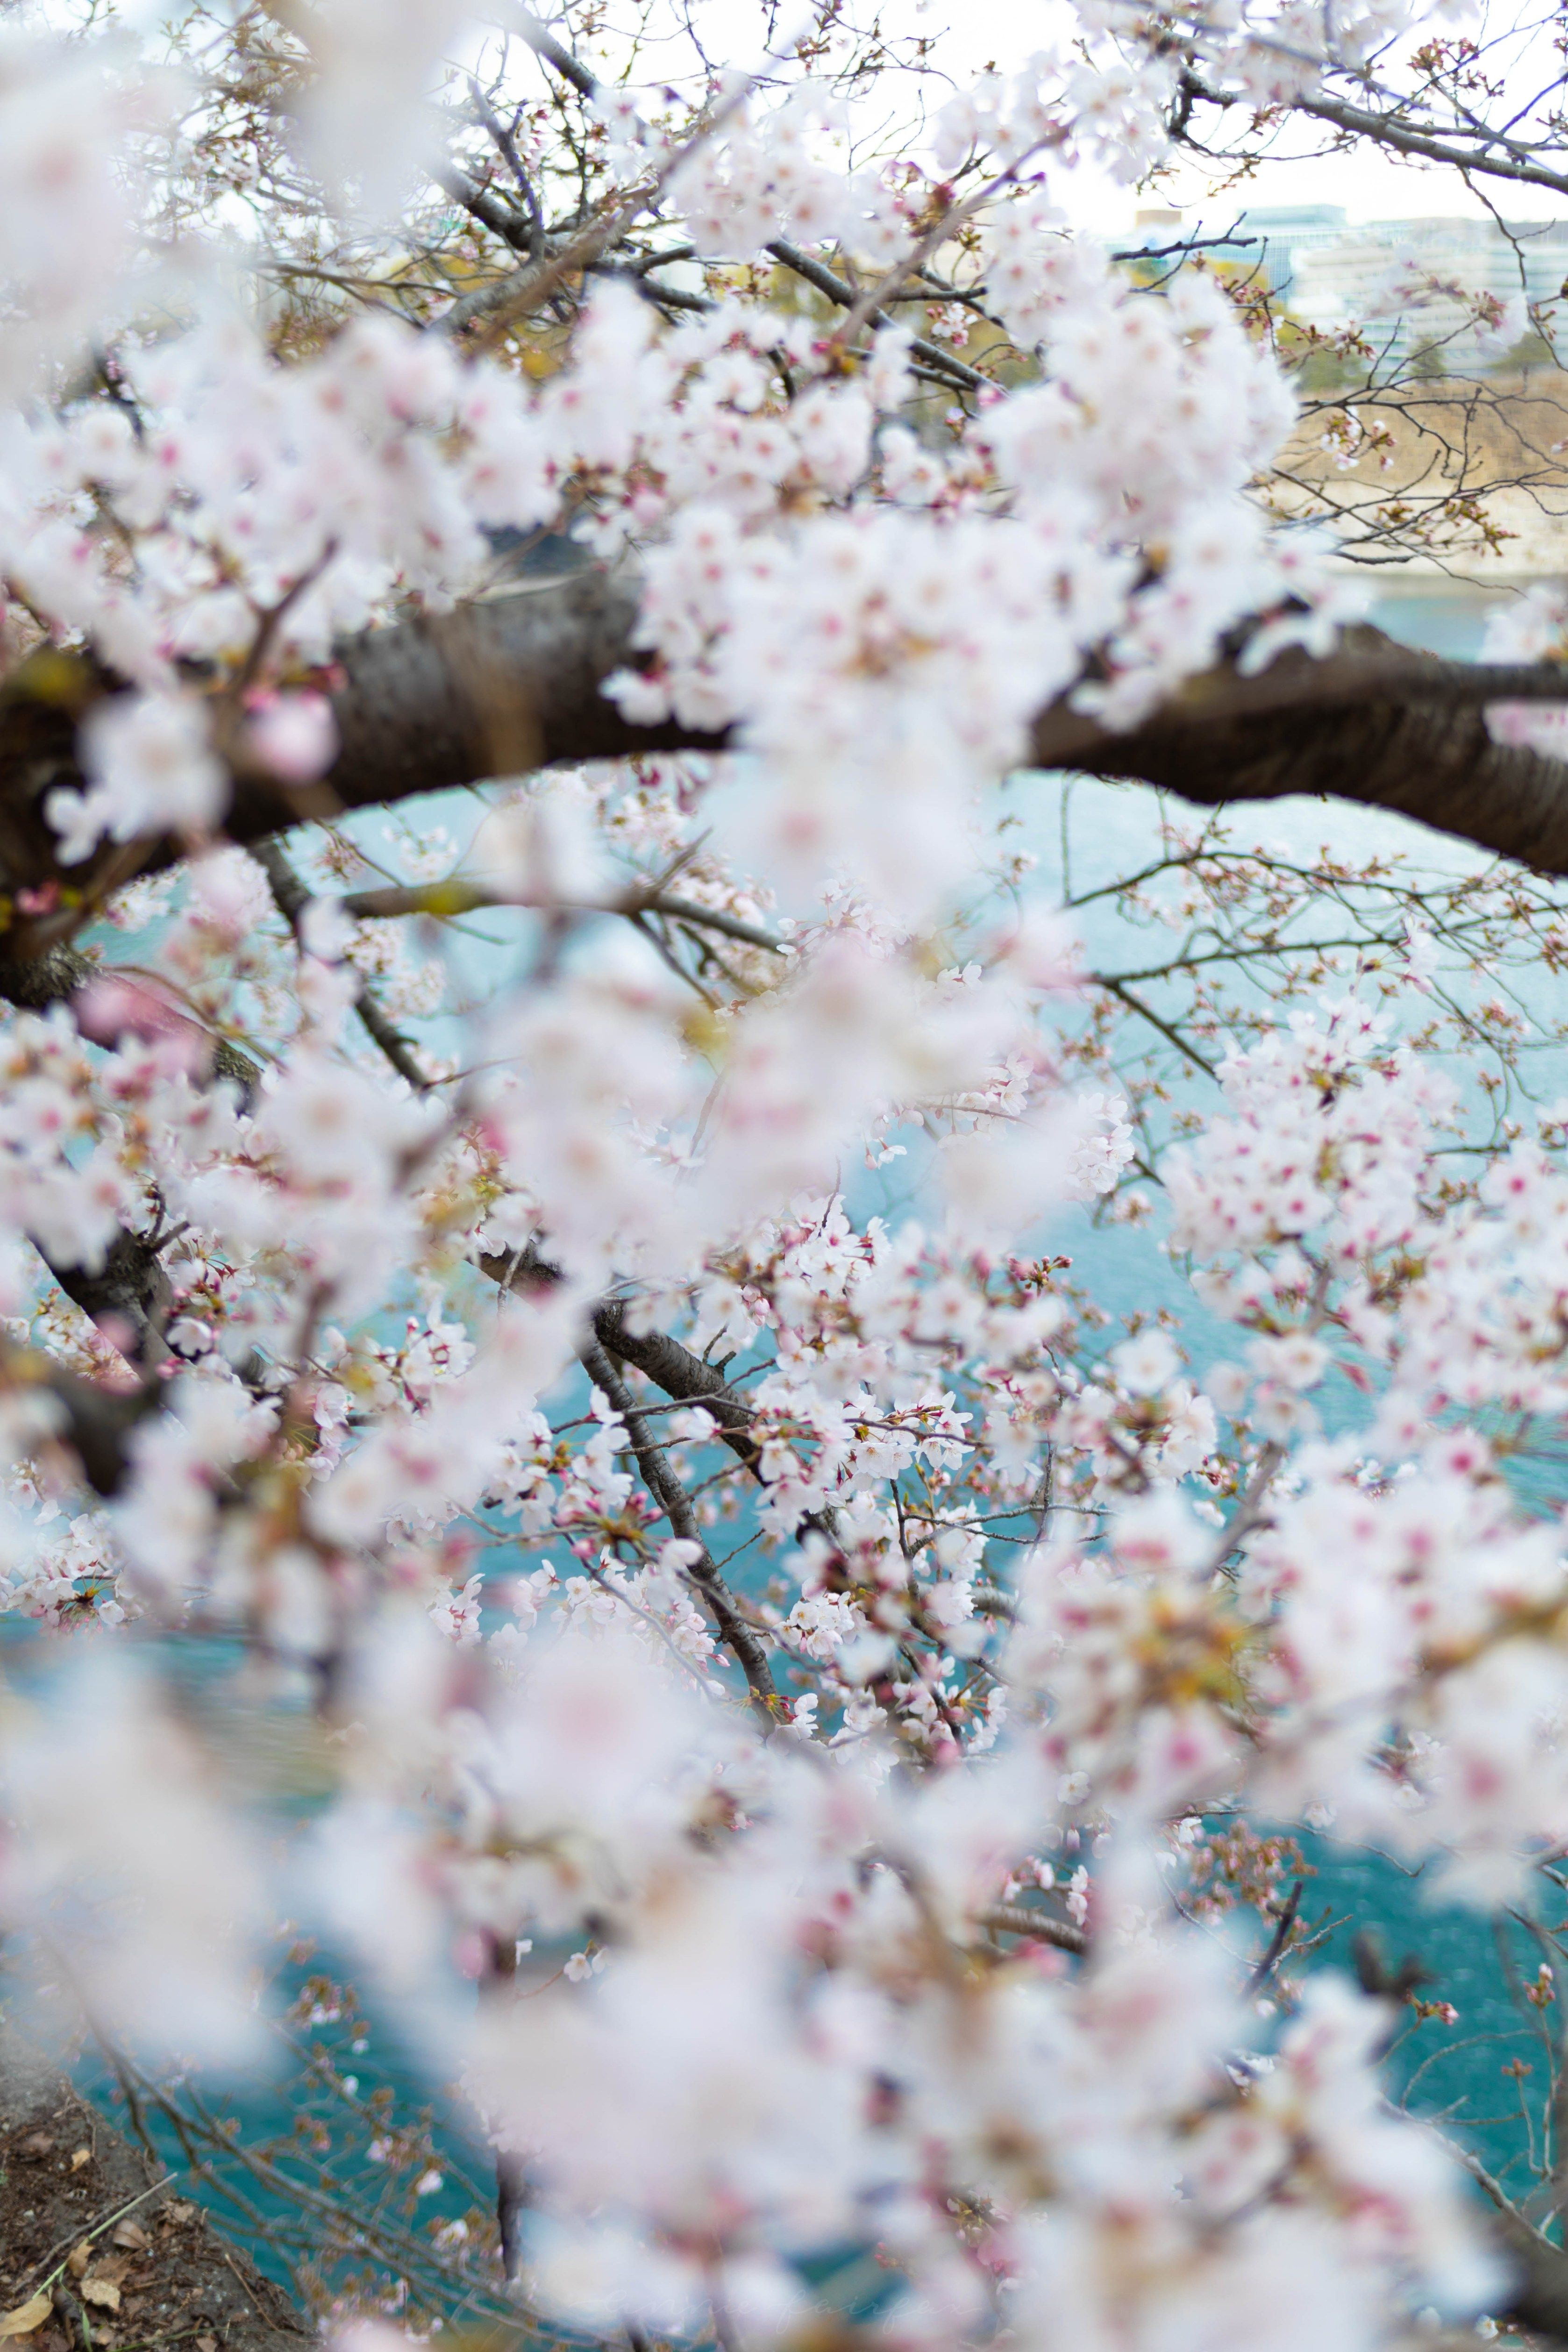 Osaka Japan The Luxury Travel Guide Annie Fairfax In 2020 Cherry Blossom Japan Cherry Blossom Japanese Travel